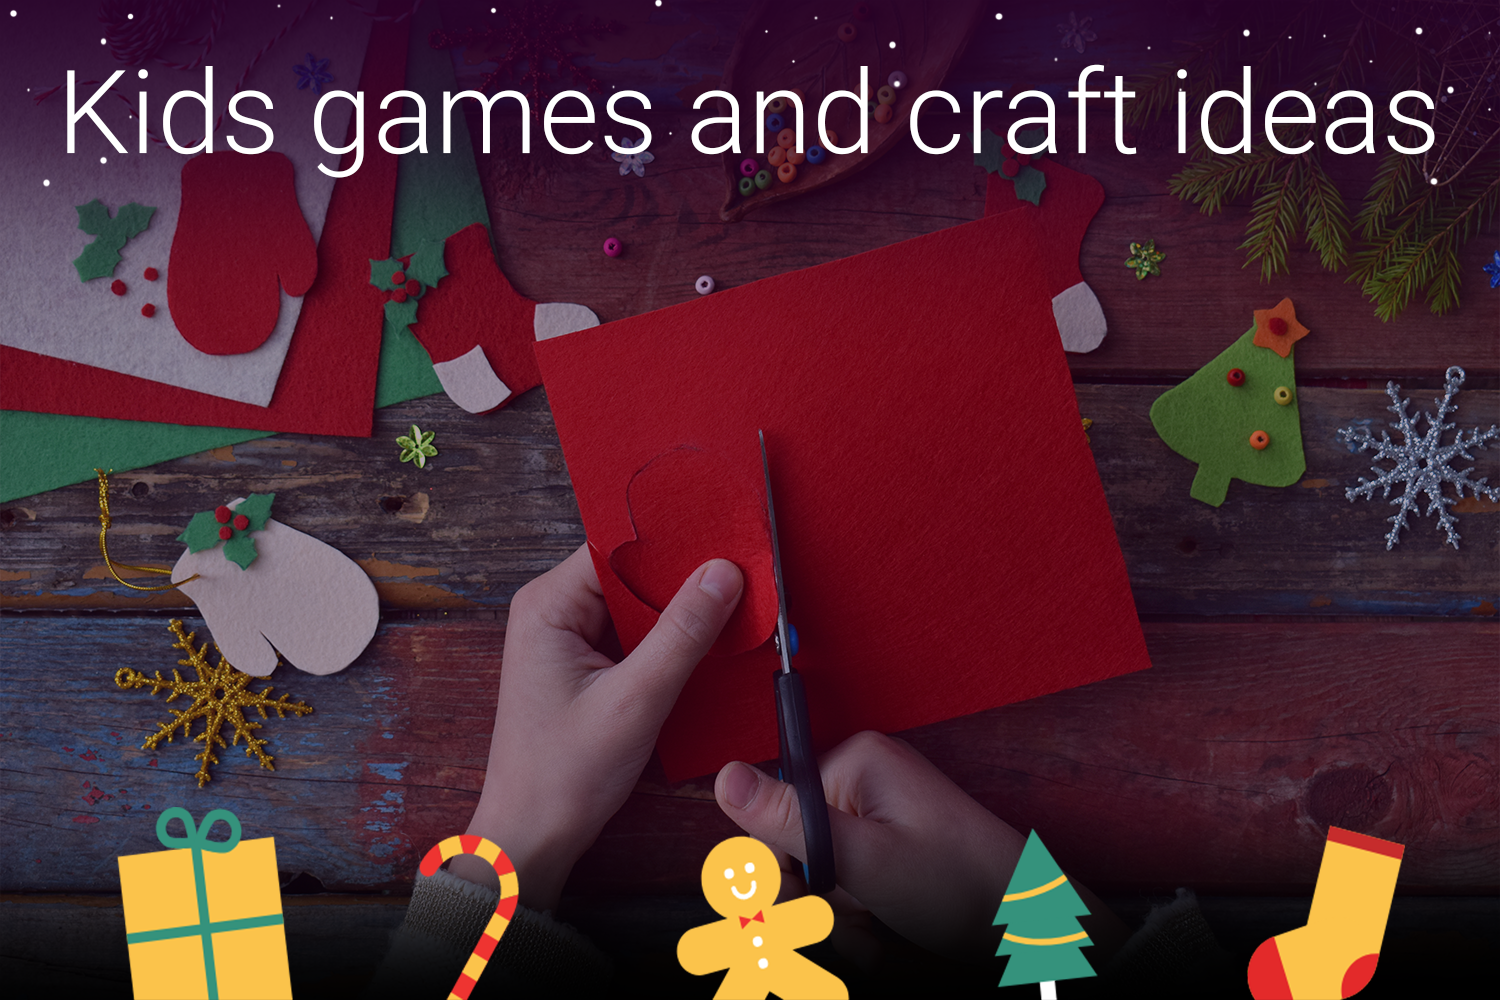 Top Christmas offers for kids games and crafts